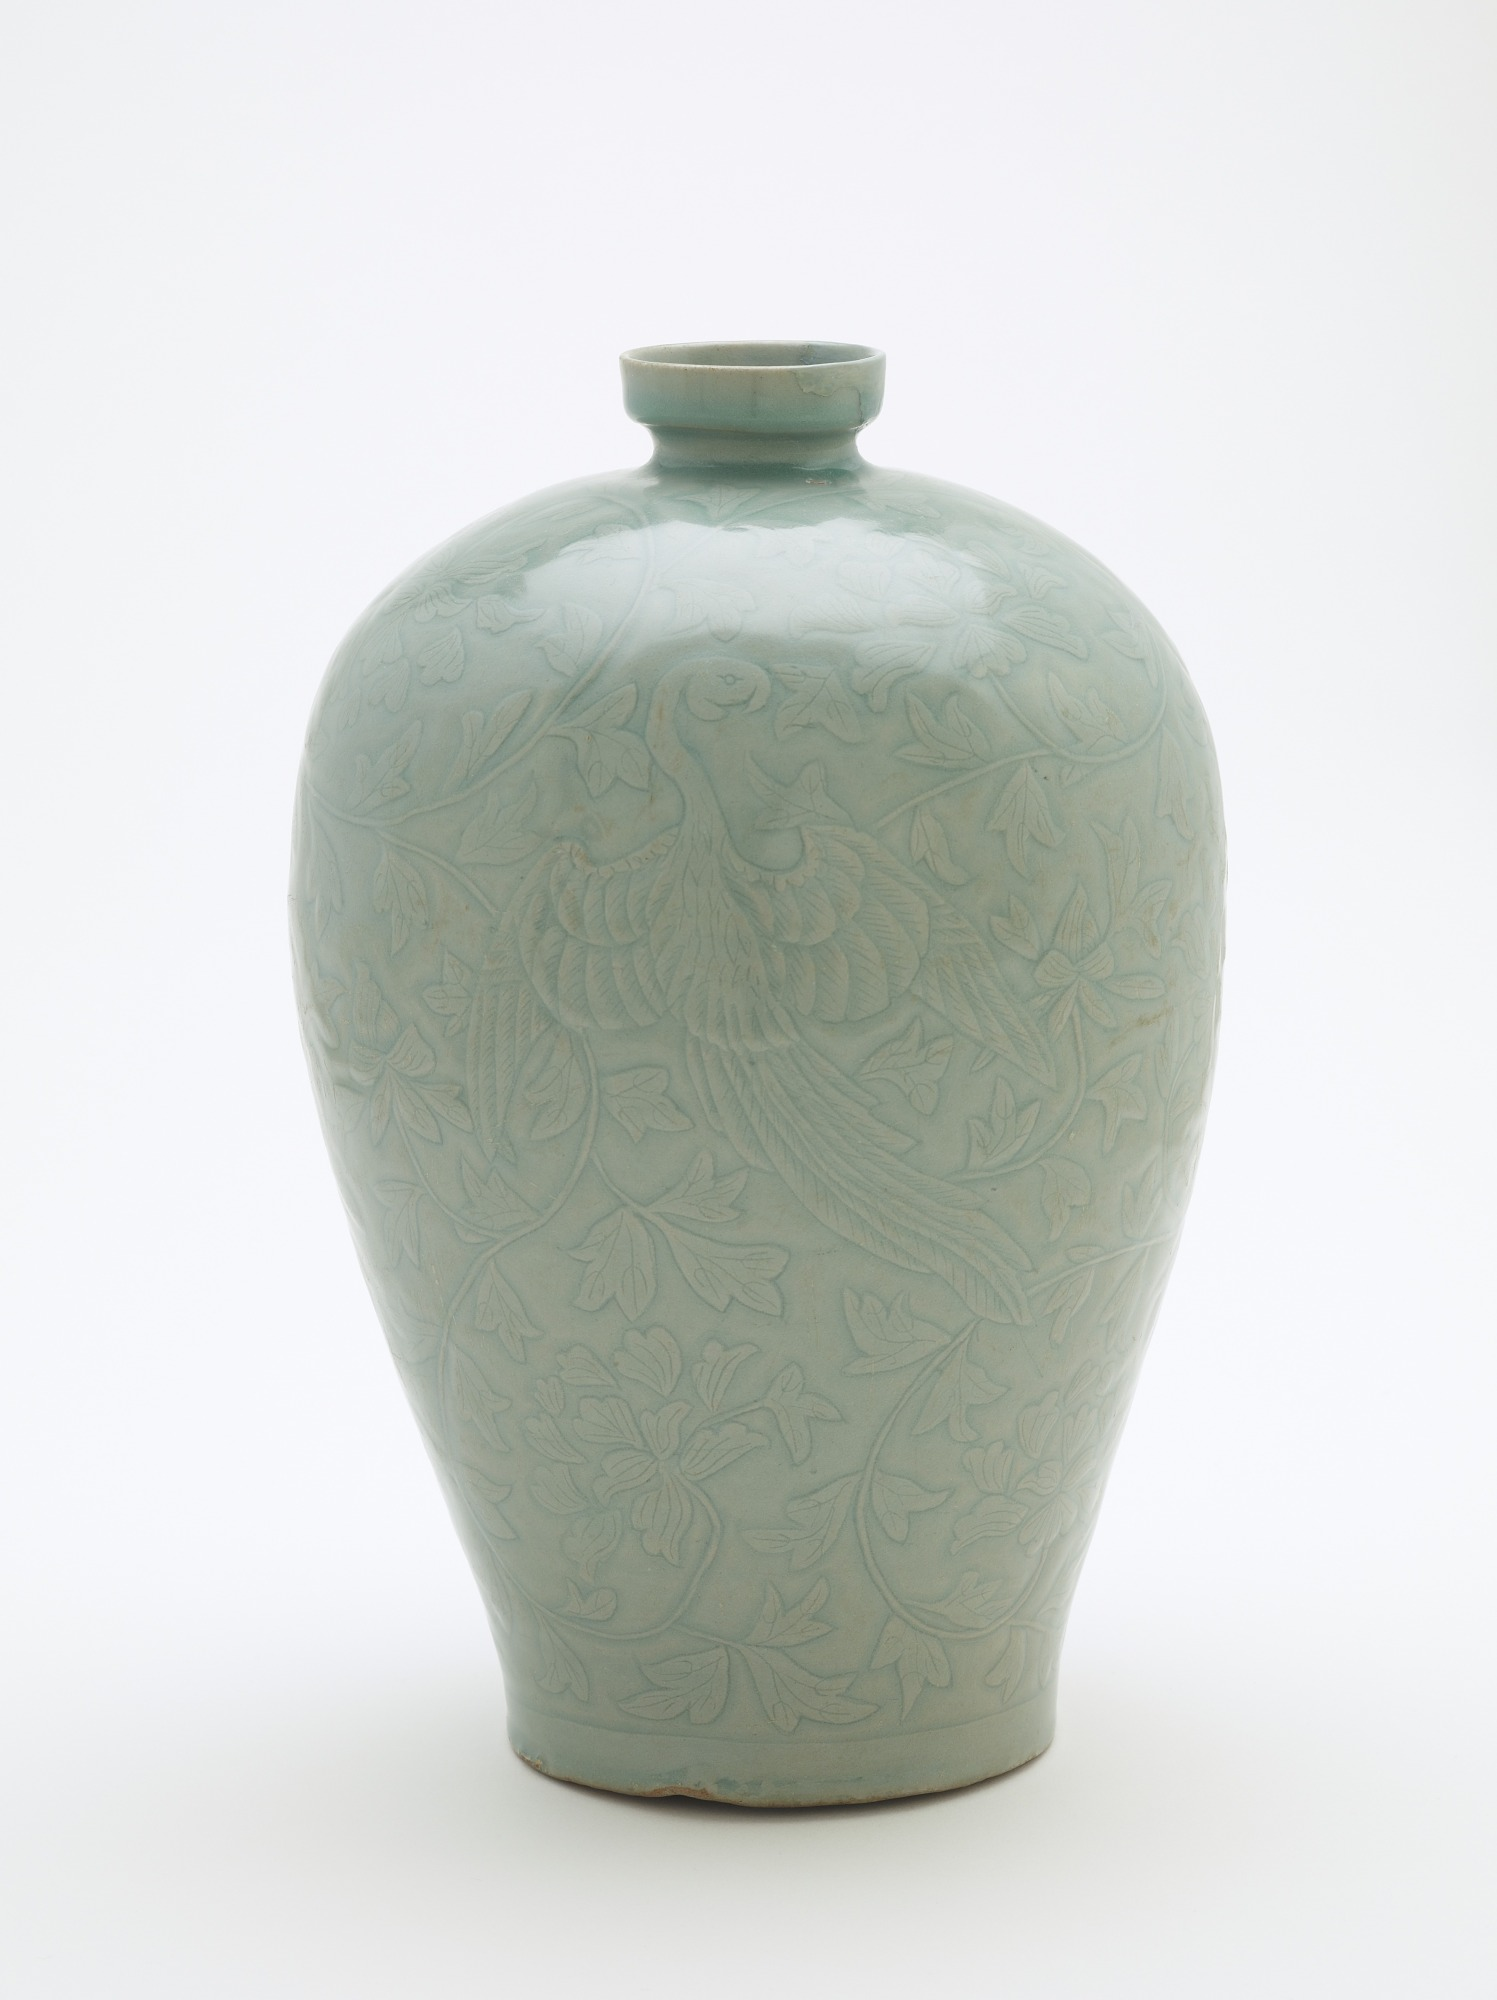 Bottle with carved and incised design of two phoenixes and peony vinescrolls